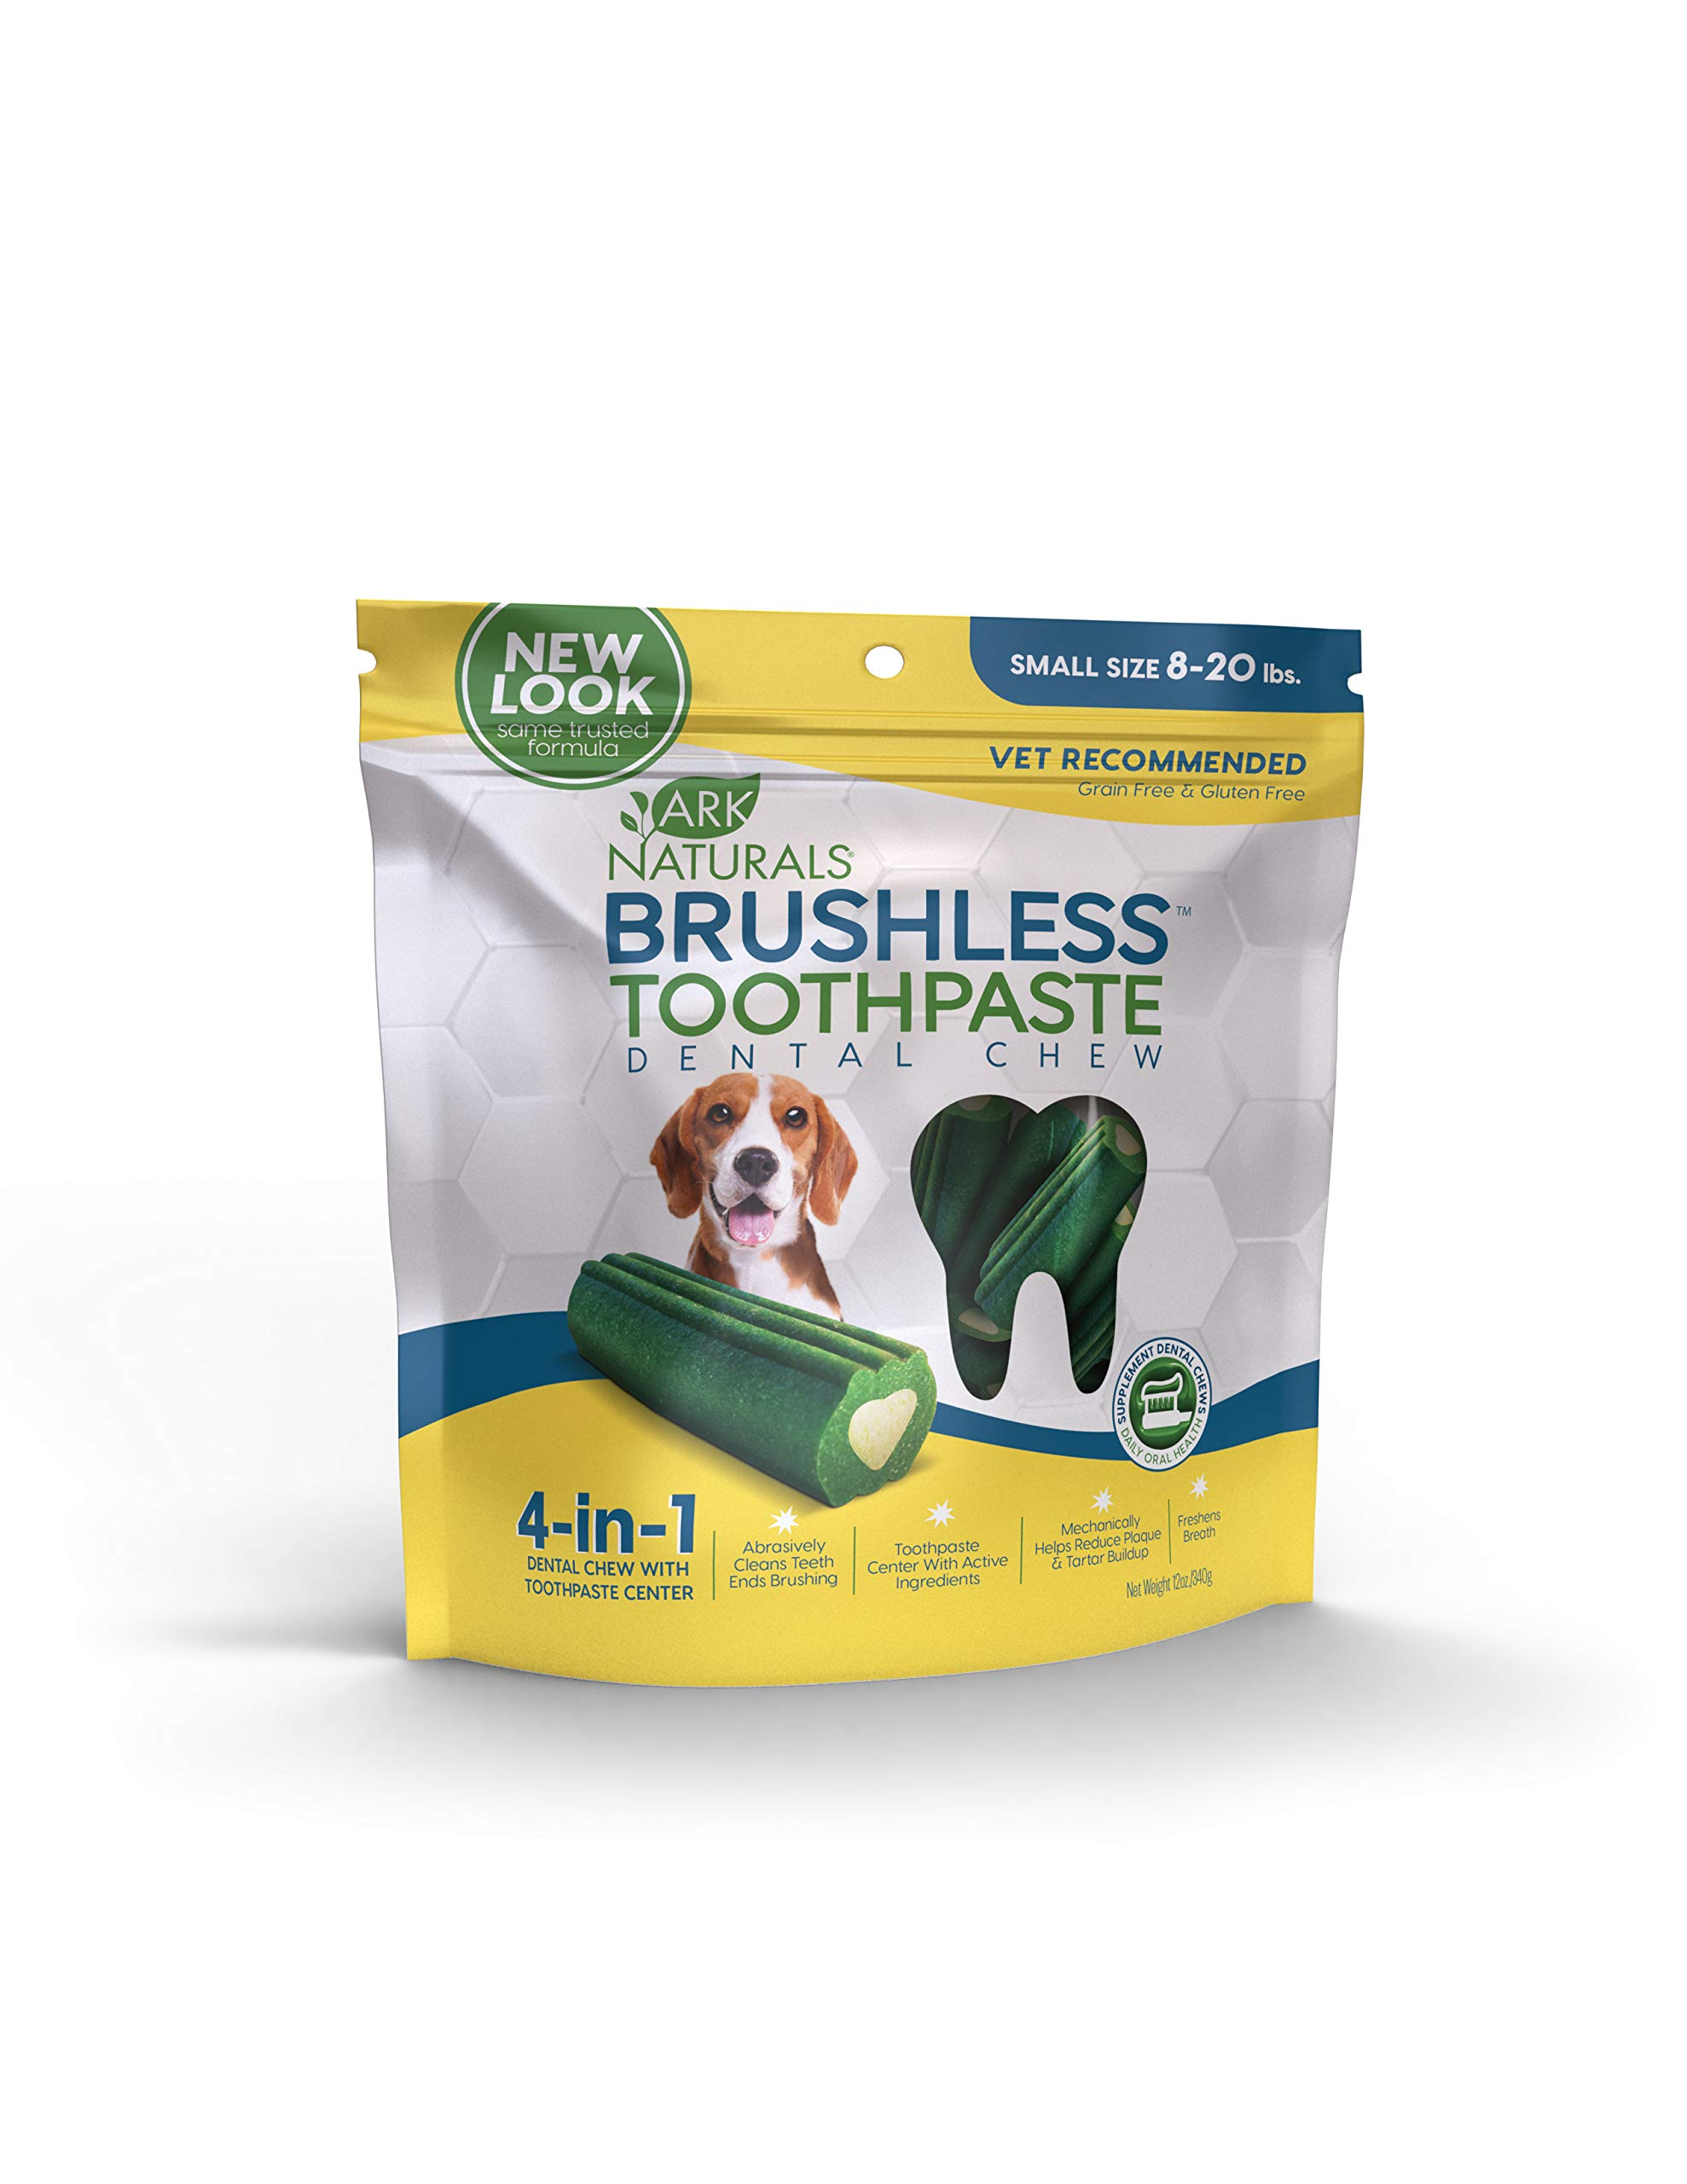 dog supplies online ark naturals brushless toothpaste, vet recommended natural dental chews for dogs, plaque, tartar and bacteria control